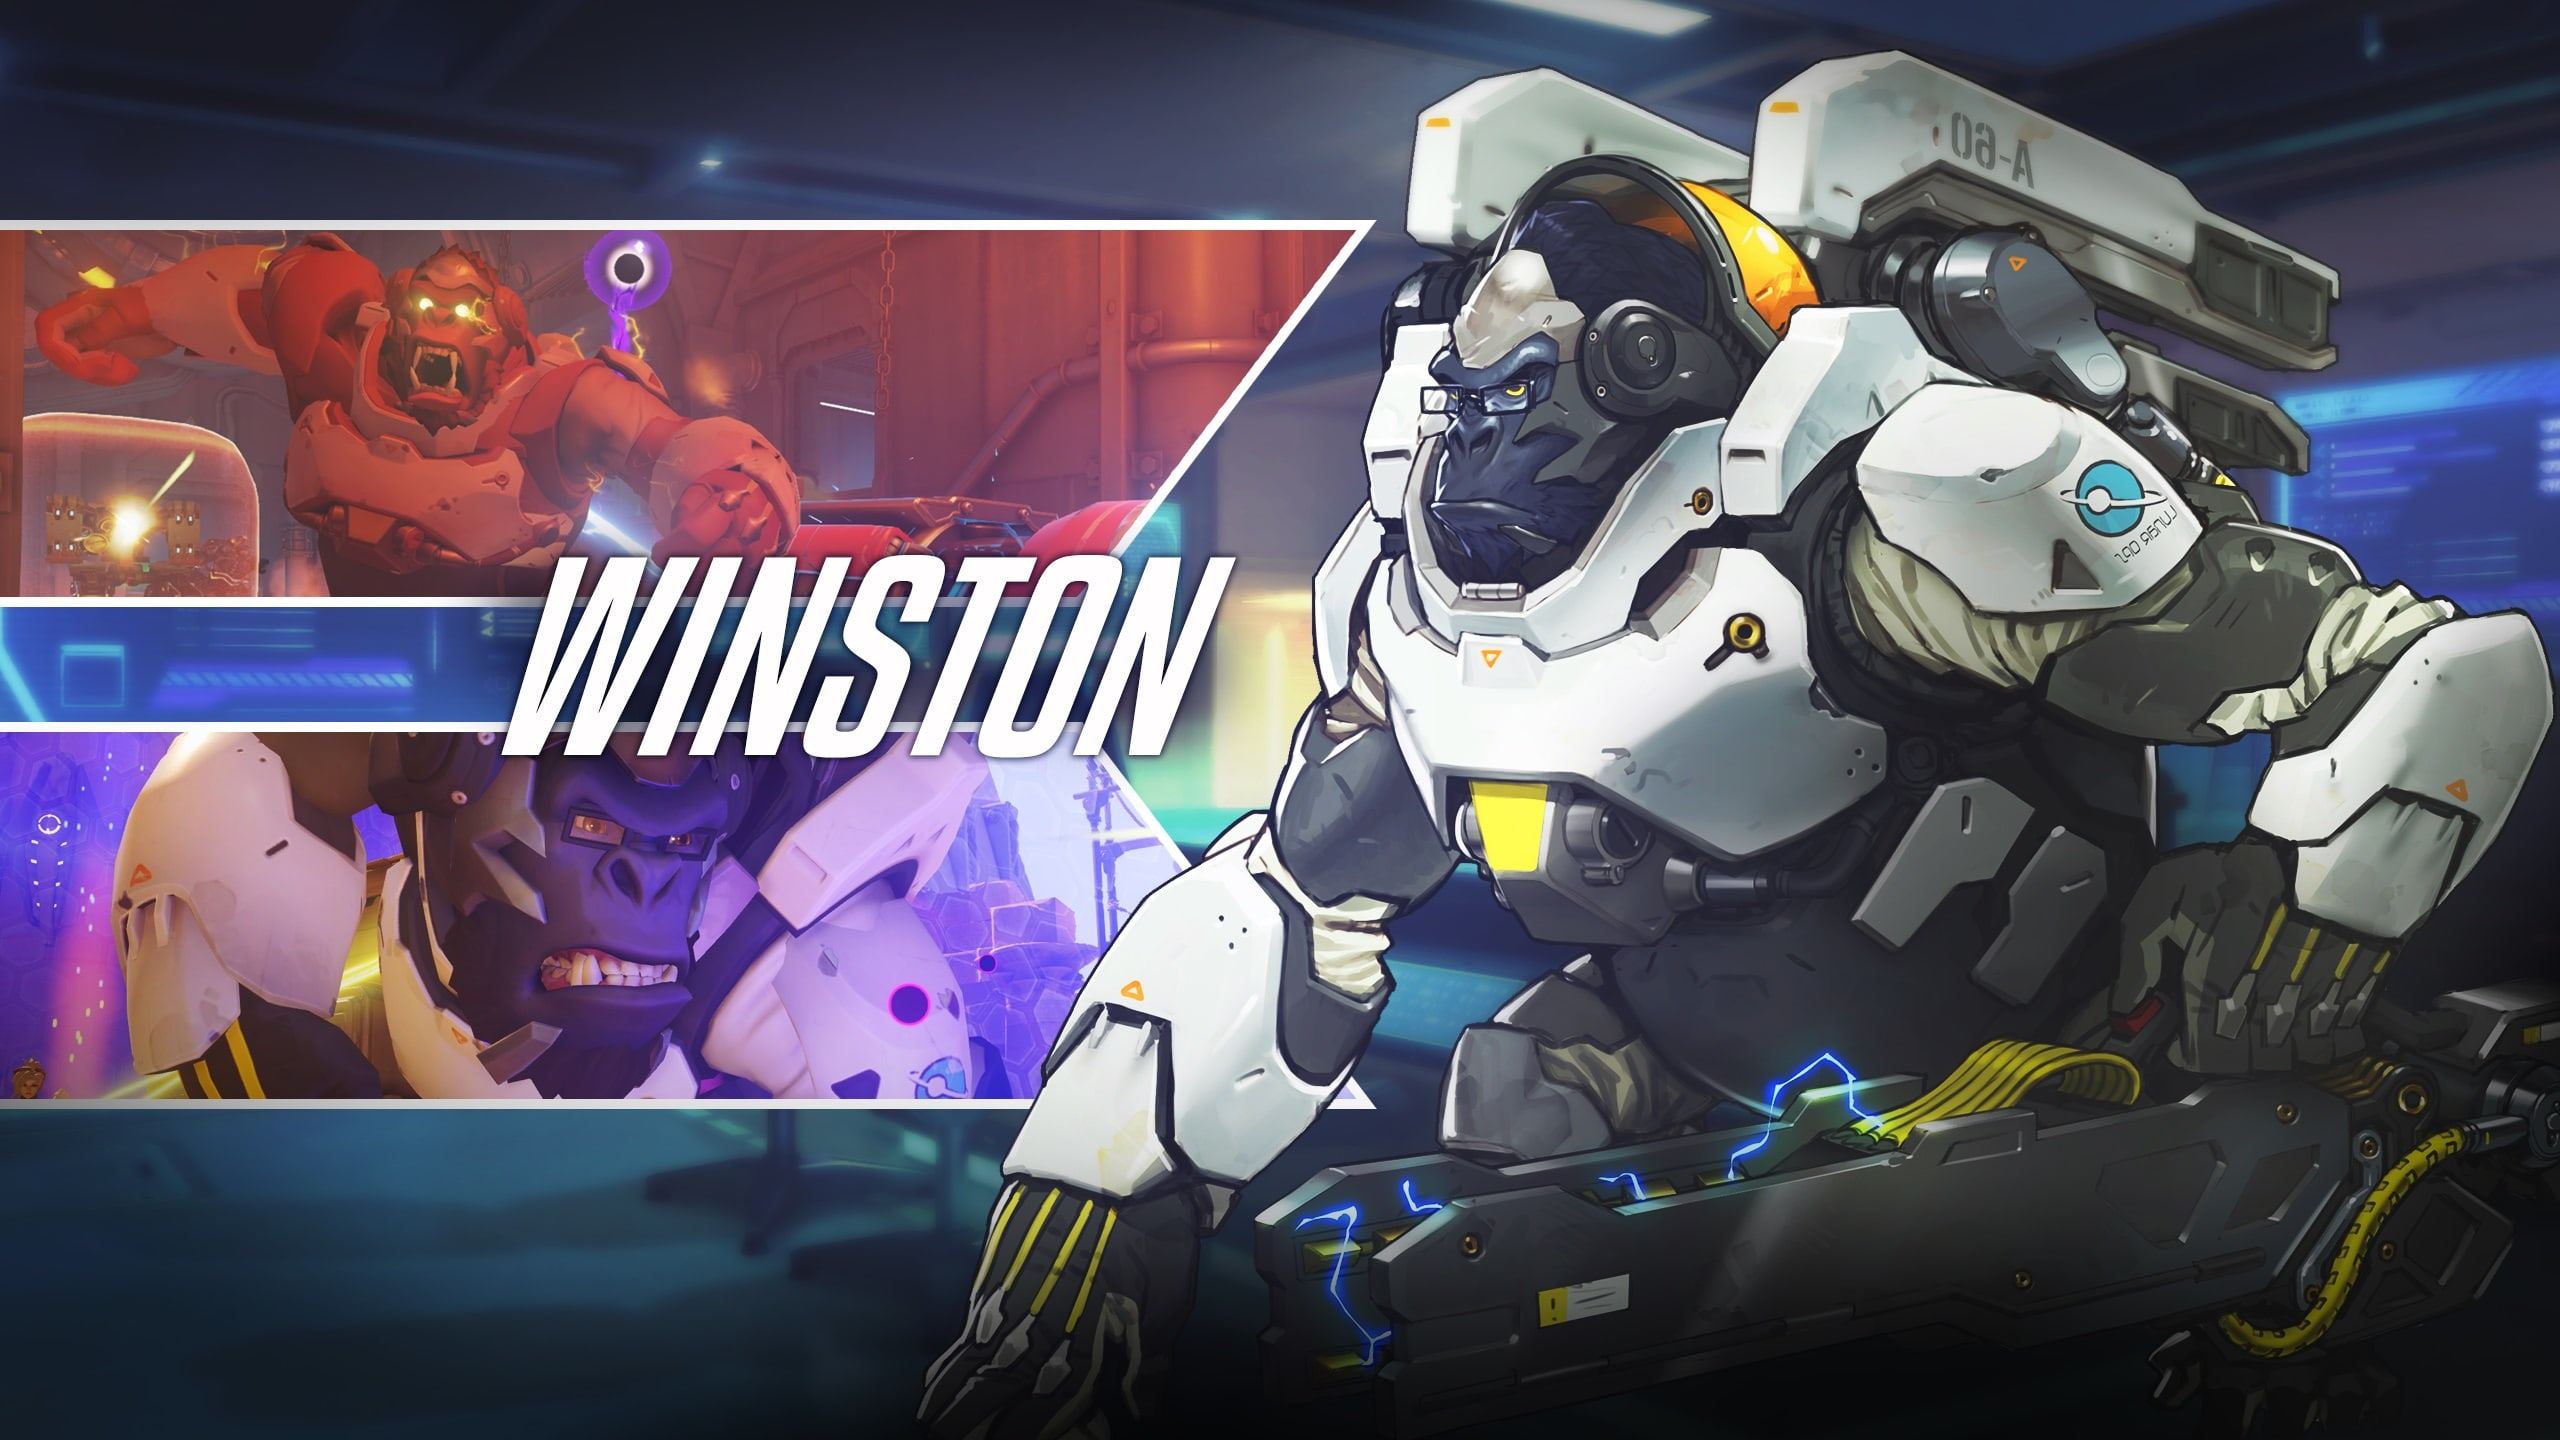 Overwatch : Winston Background